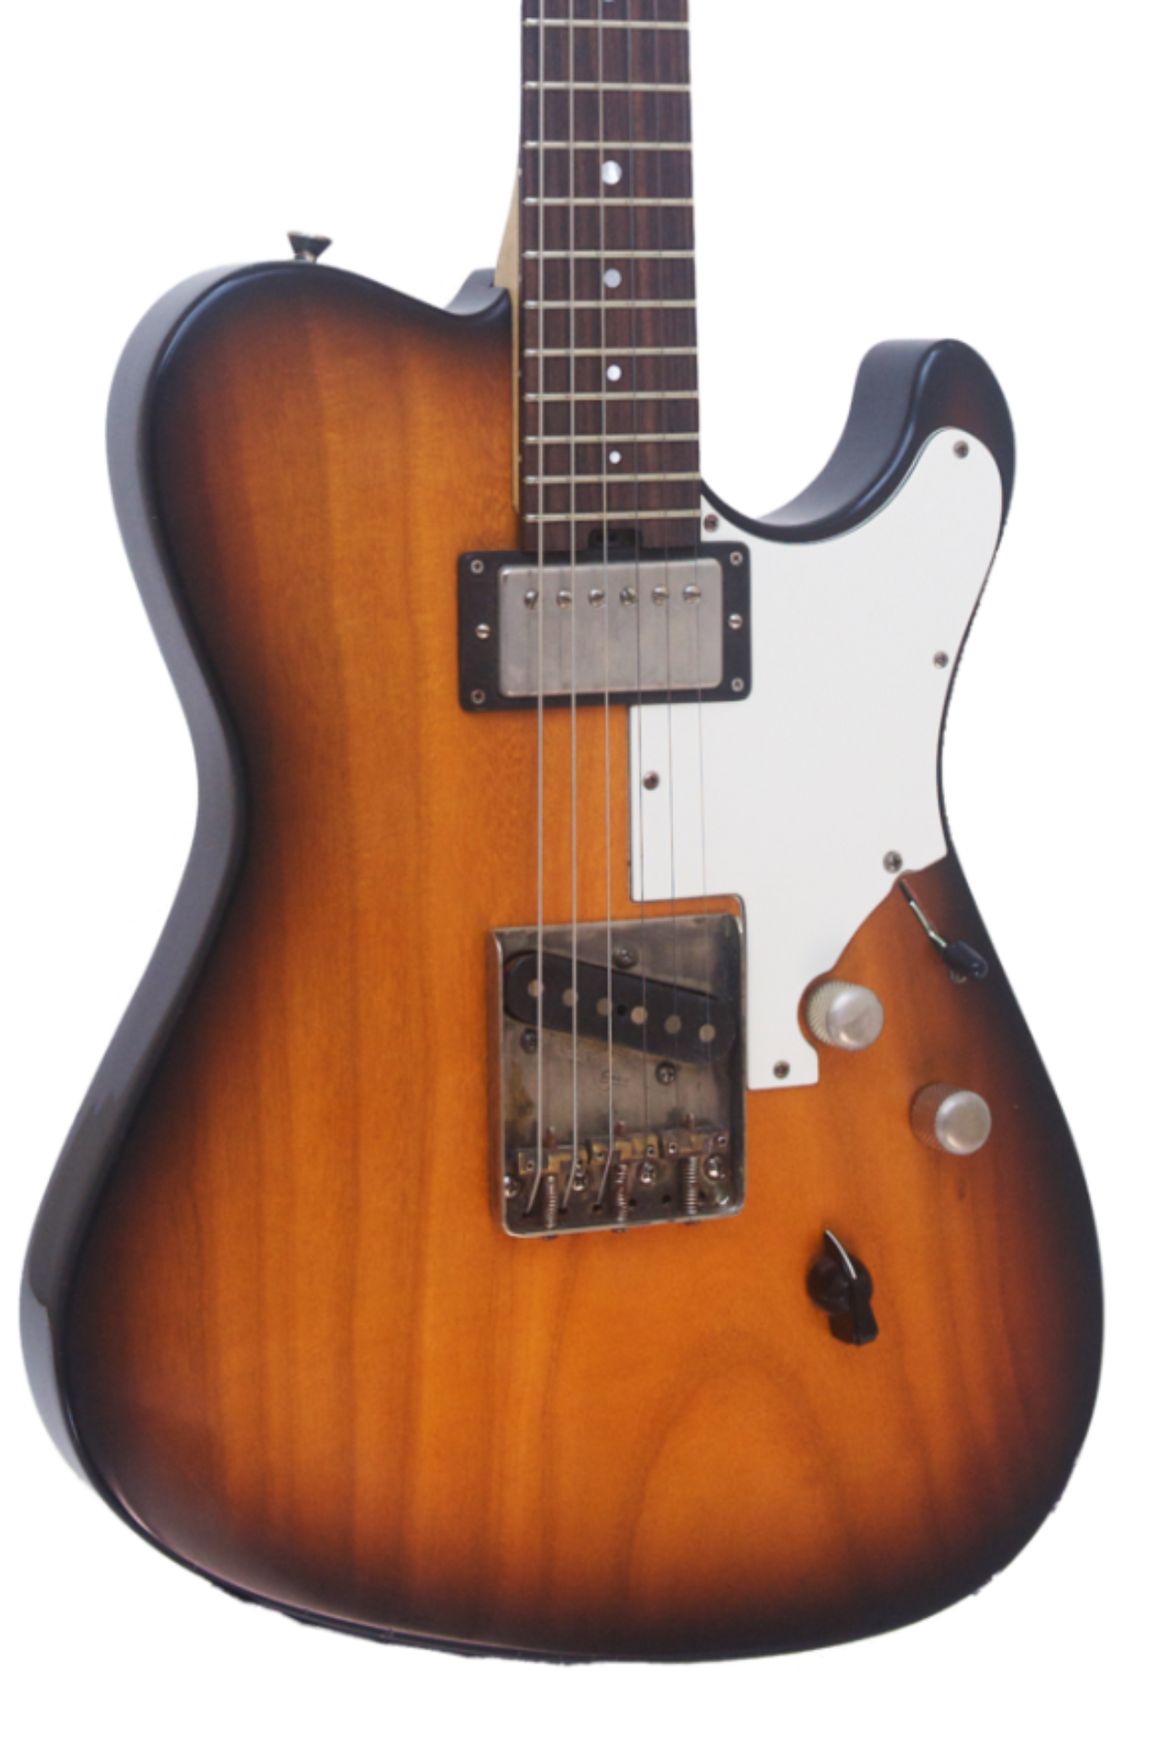 SOLD Asher HT Deluxe #863 in a Light Relic Two-Tone Nitro Burst